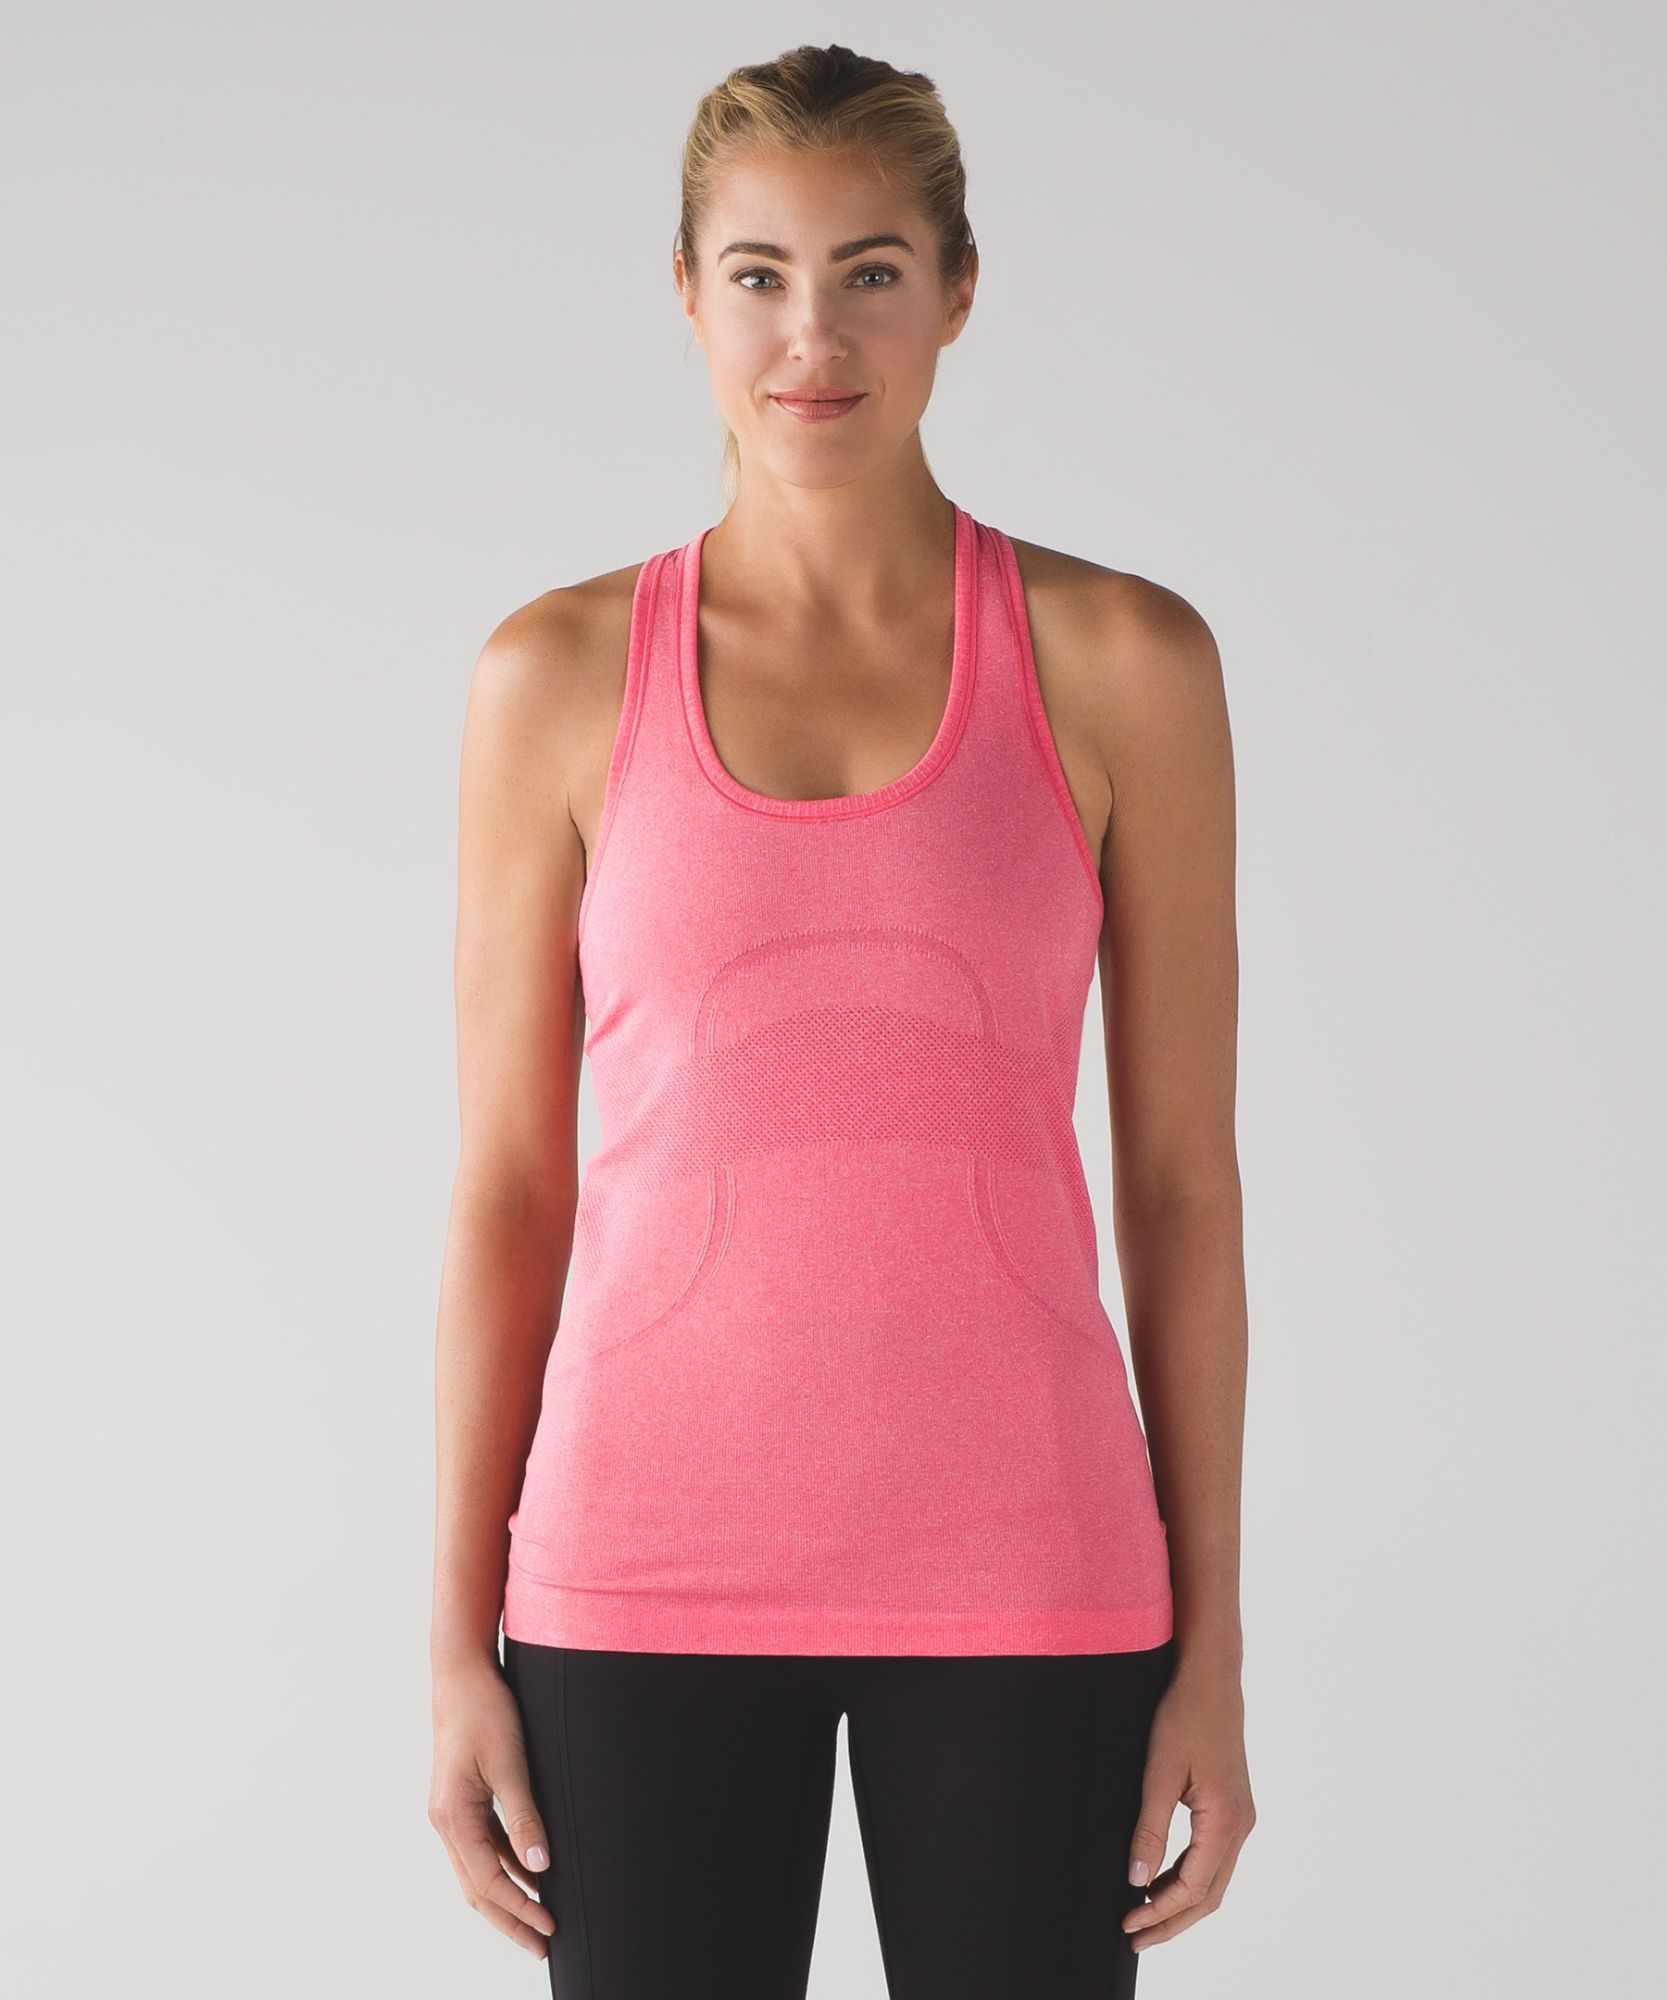 c233dc01197e2 Lululemon Swiftly tech racerback